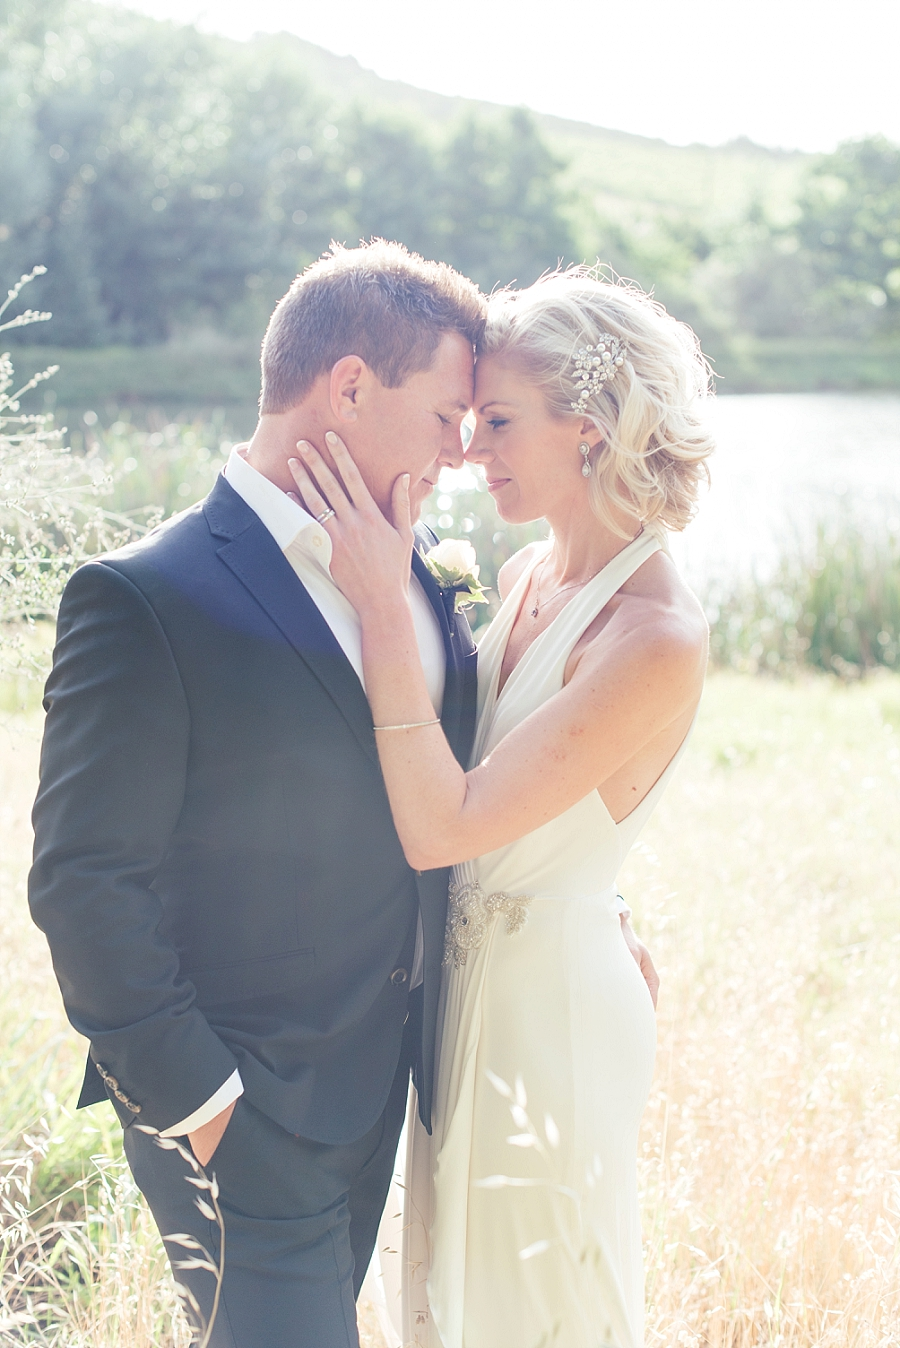 Darren Bester Photography - Cape Town Wedding Photographer - Lee and Lyall Johnson_0081.jpg